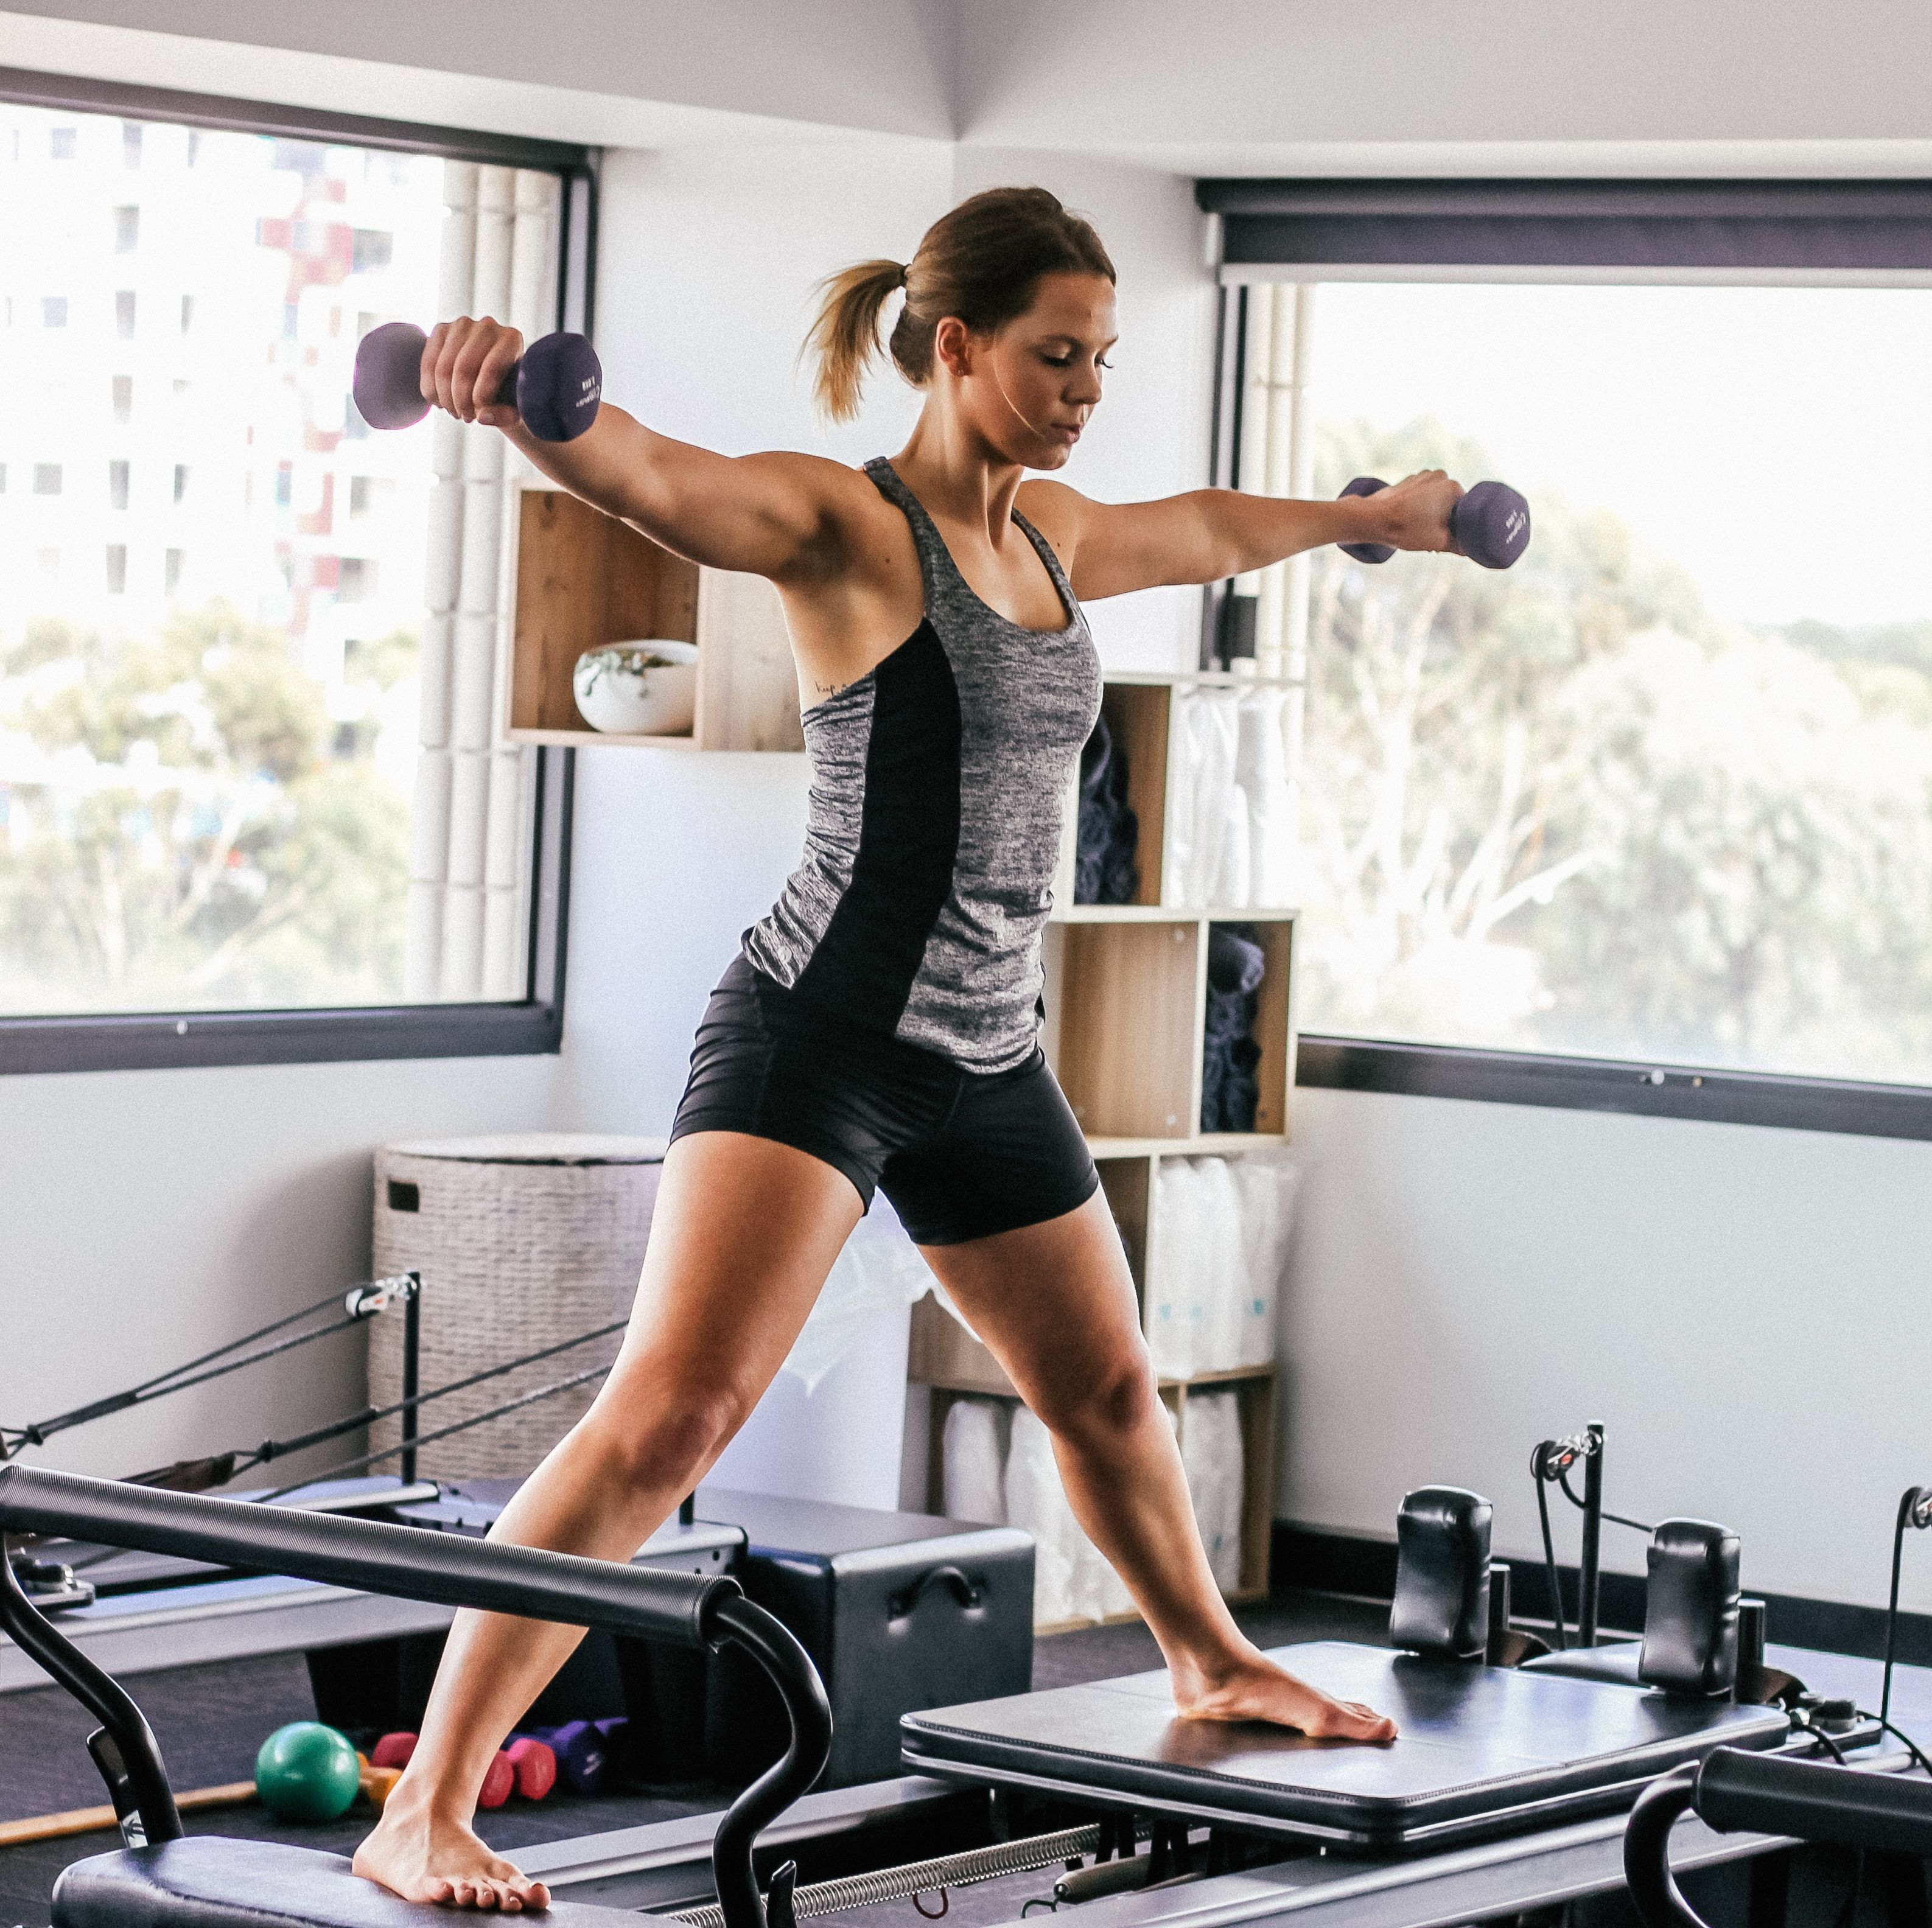 5 Great Cardio Exercises for People with Bad Knees